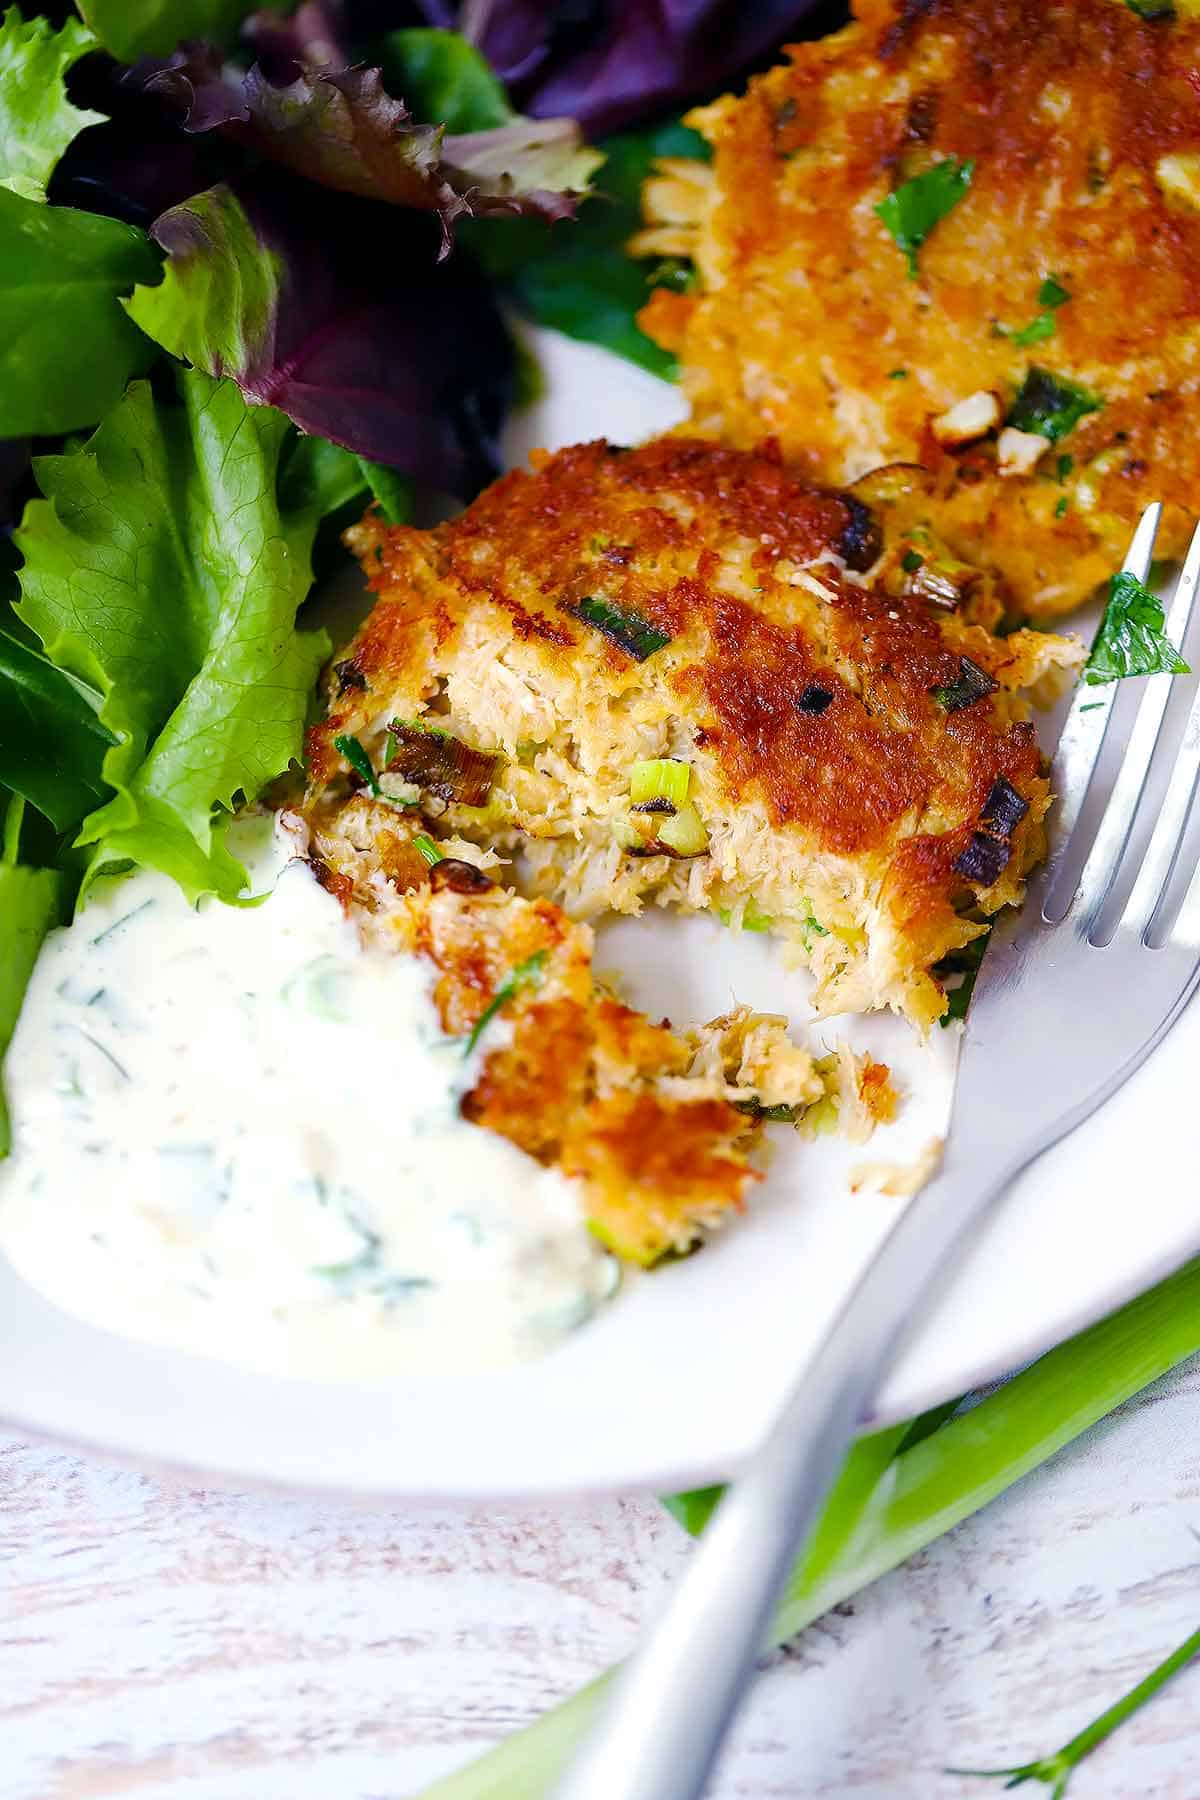 A crab cake cut in half with a fork on a white plate served with tartar sauce and salad on the side.